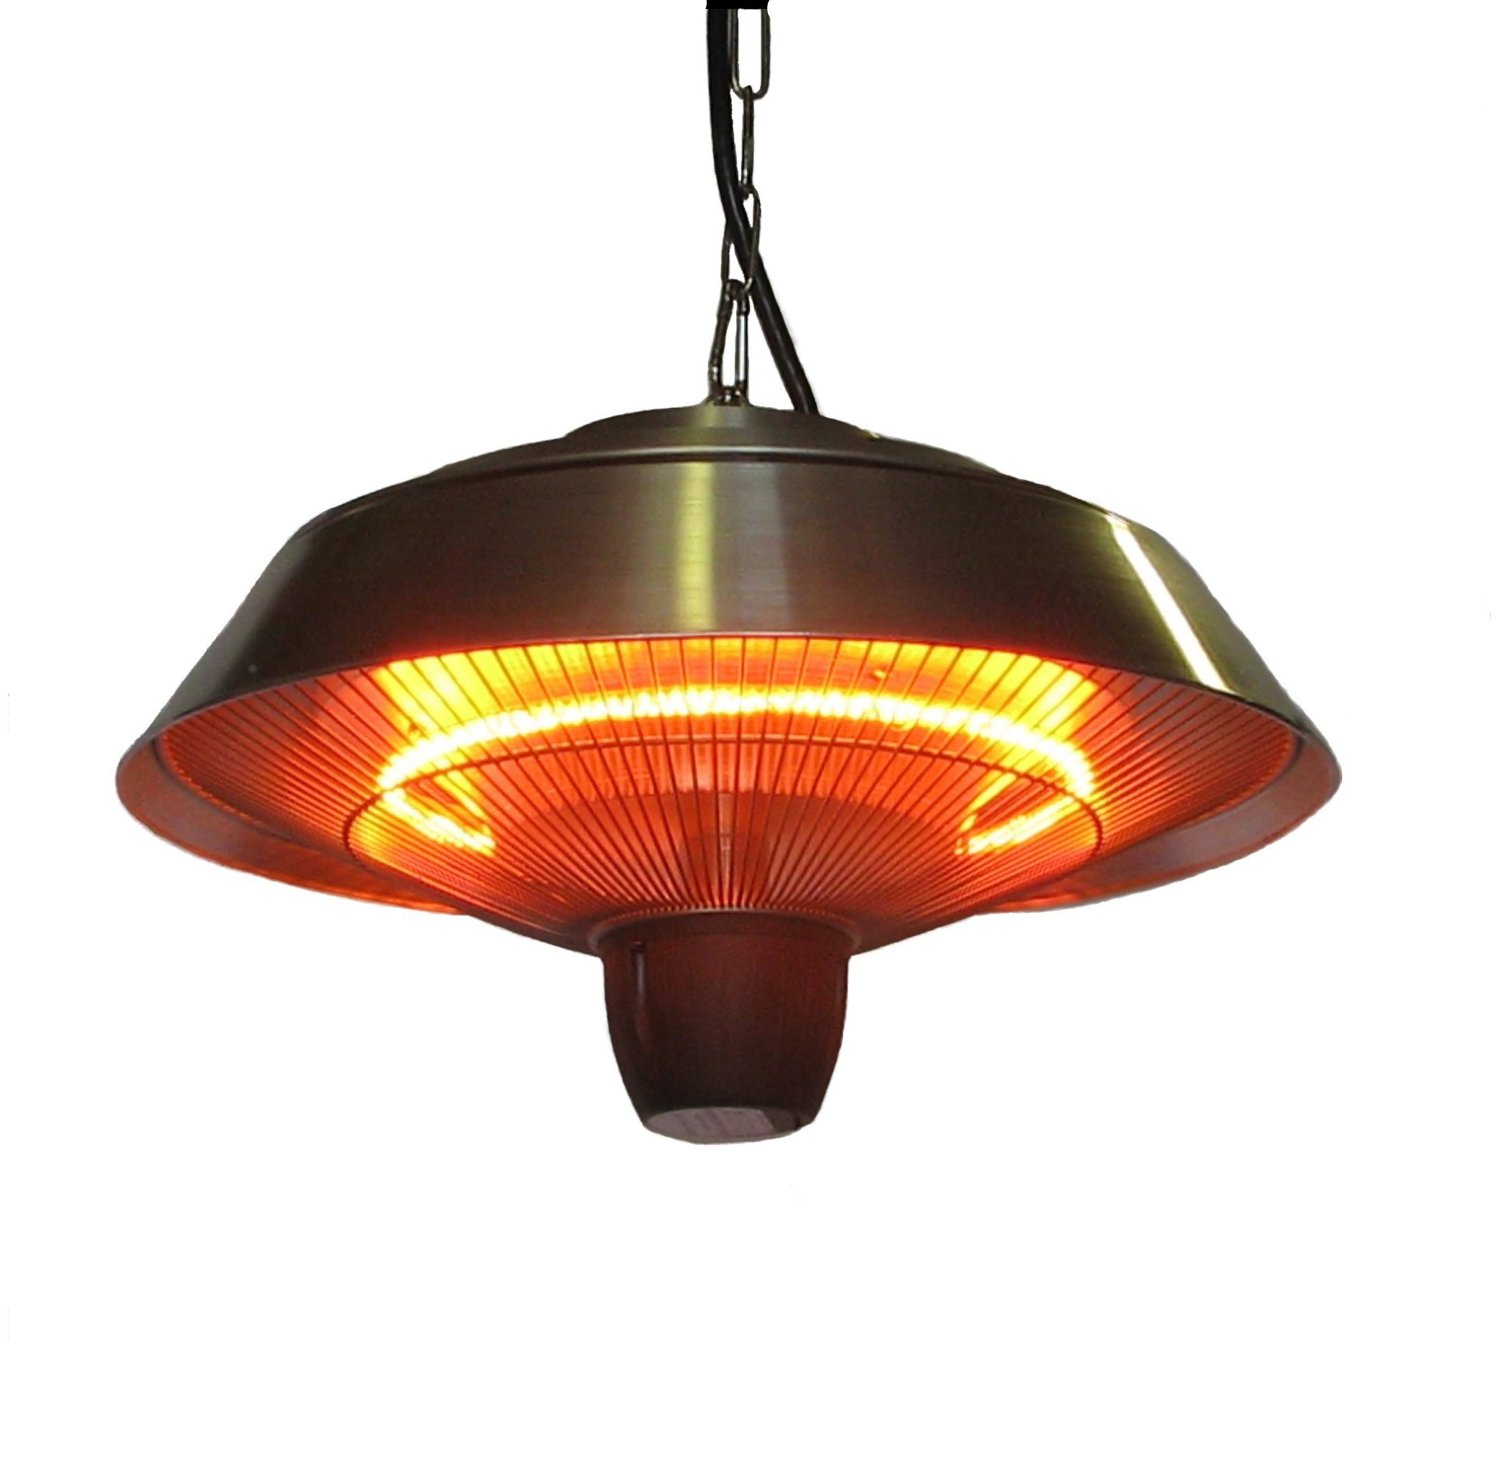 Heated ceiling fans and ceiling fan heaters - Ceiling Fans N More